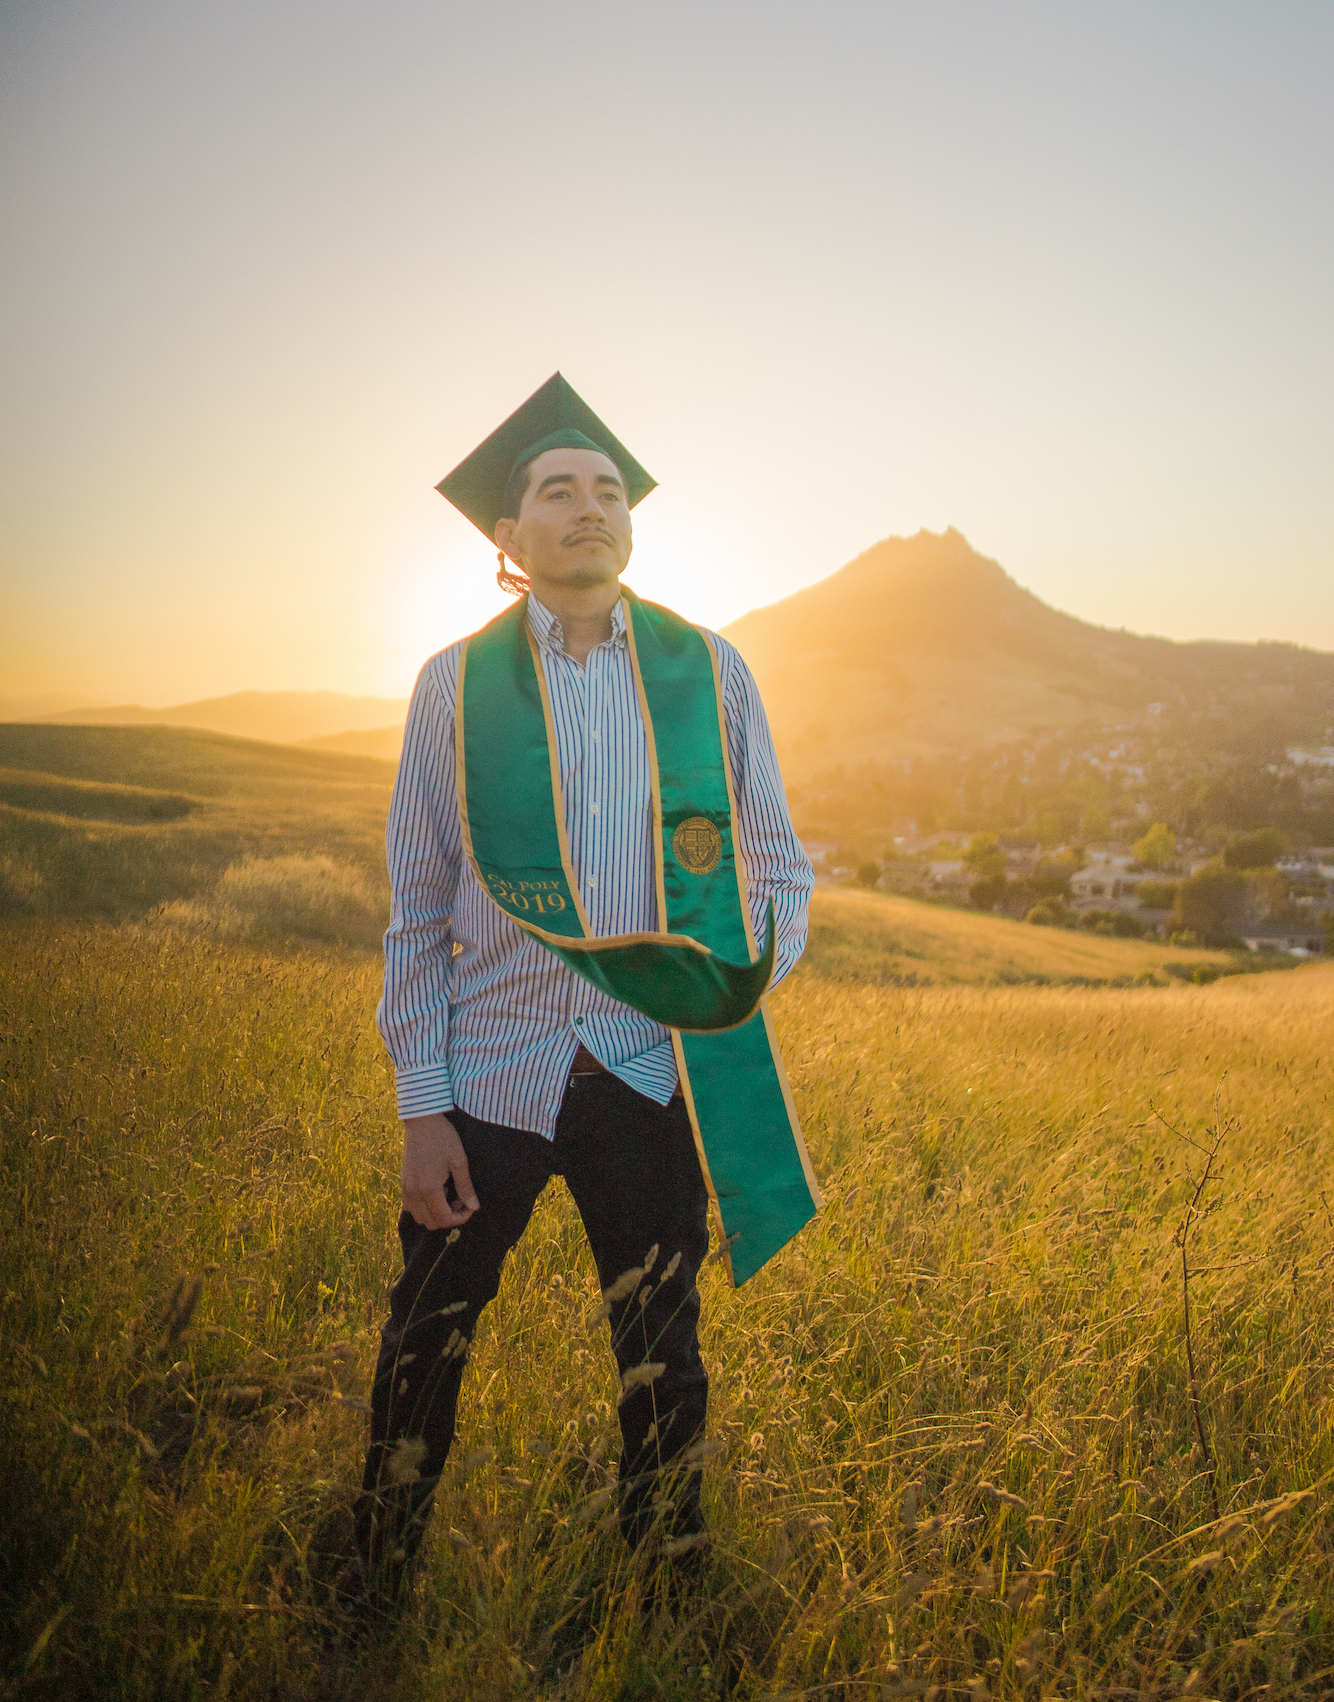 Amado graduated from Cal Poly San Luis Obispo in June 2019